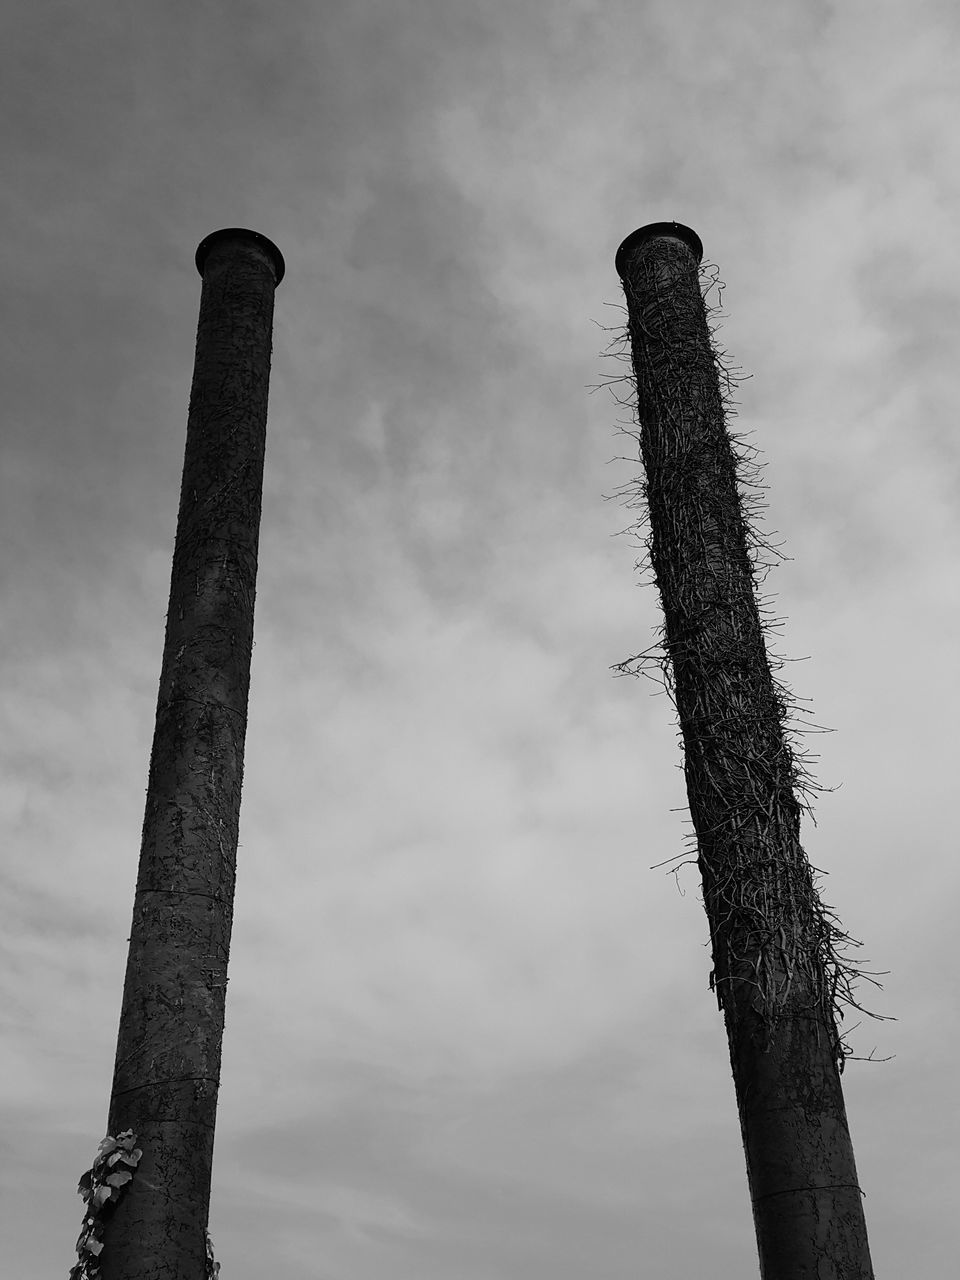 sky, low angle view, no people, nature, plant, day, tree trunk, trunk, tree, outdoors, focus on foreground, cloud - sky, pole, tall - high, tranquility, smoke stack, metal, growth, post, bare tree, wooden post